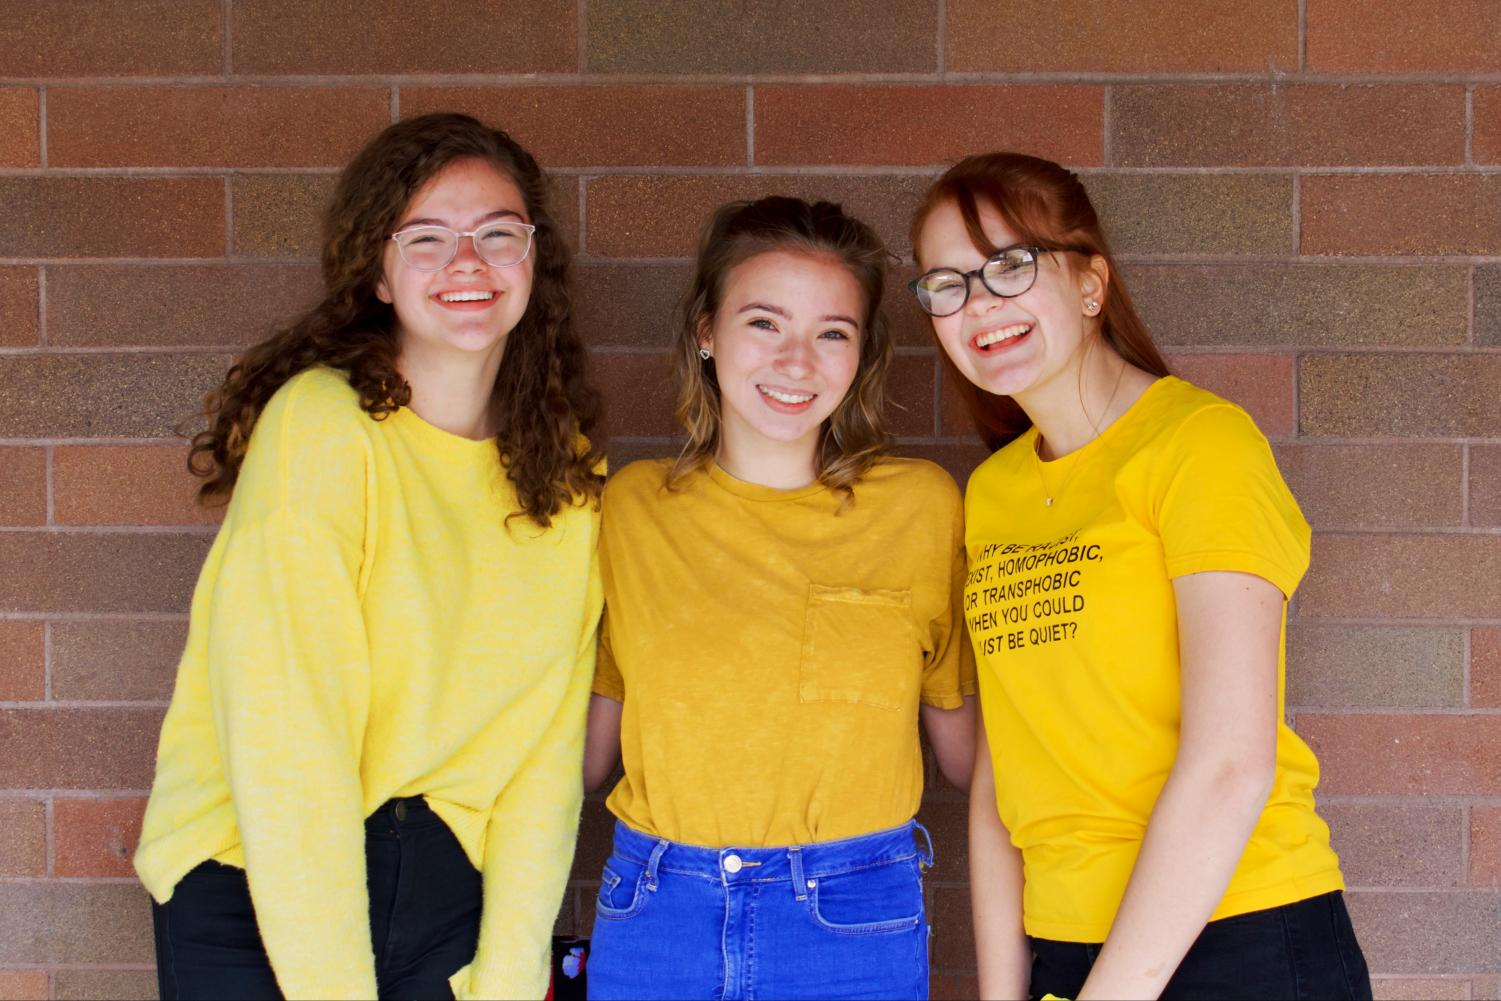 Freshmen+Isabella+Simonutti%2C+Lilly+Tiller%2C+and+Kamryn+Houghton+wear+yellow+to+represent+the+class+of+2023+on+class+colors+day.